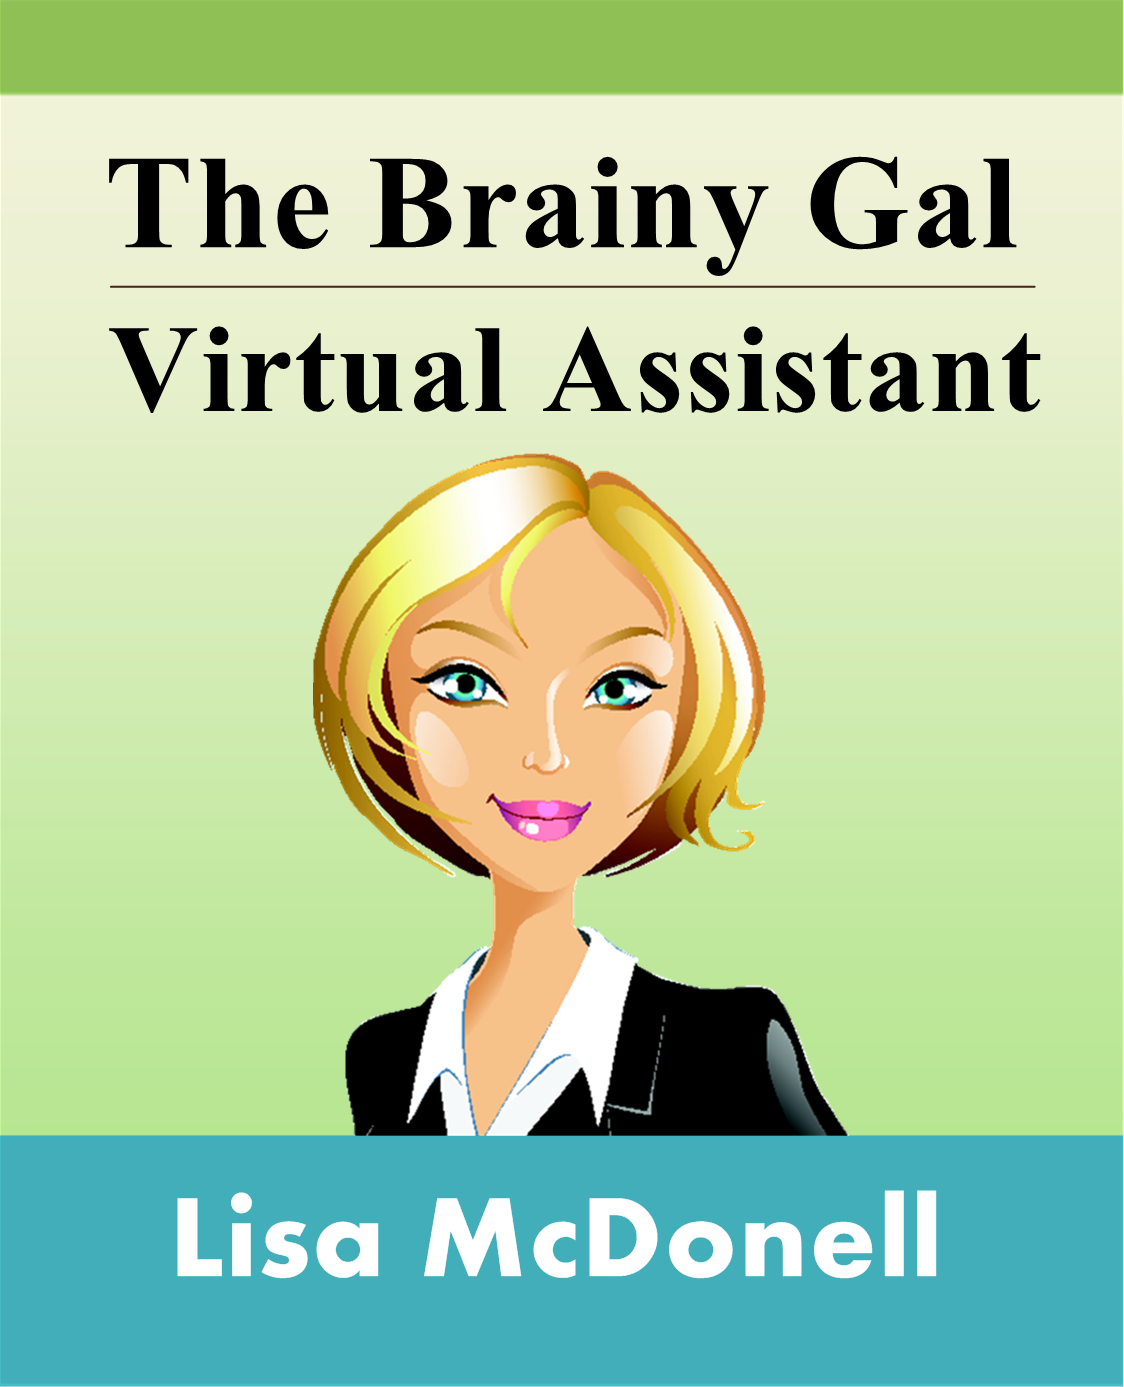 The Brainy Gal With Lisa McDonell